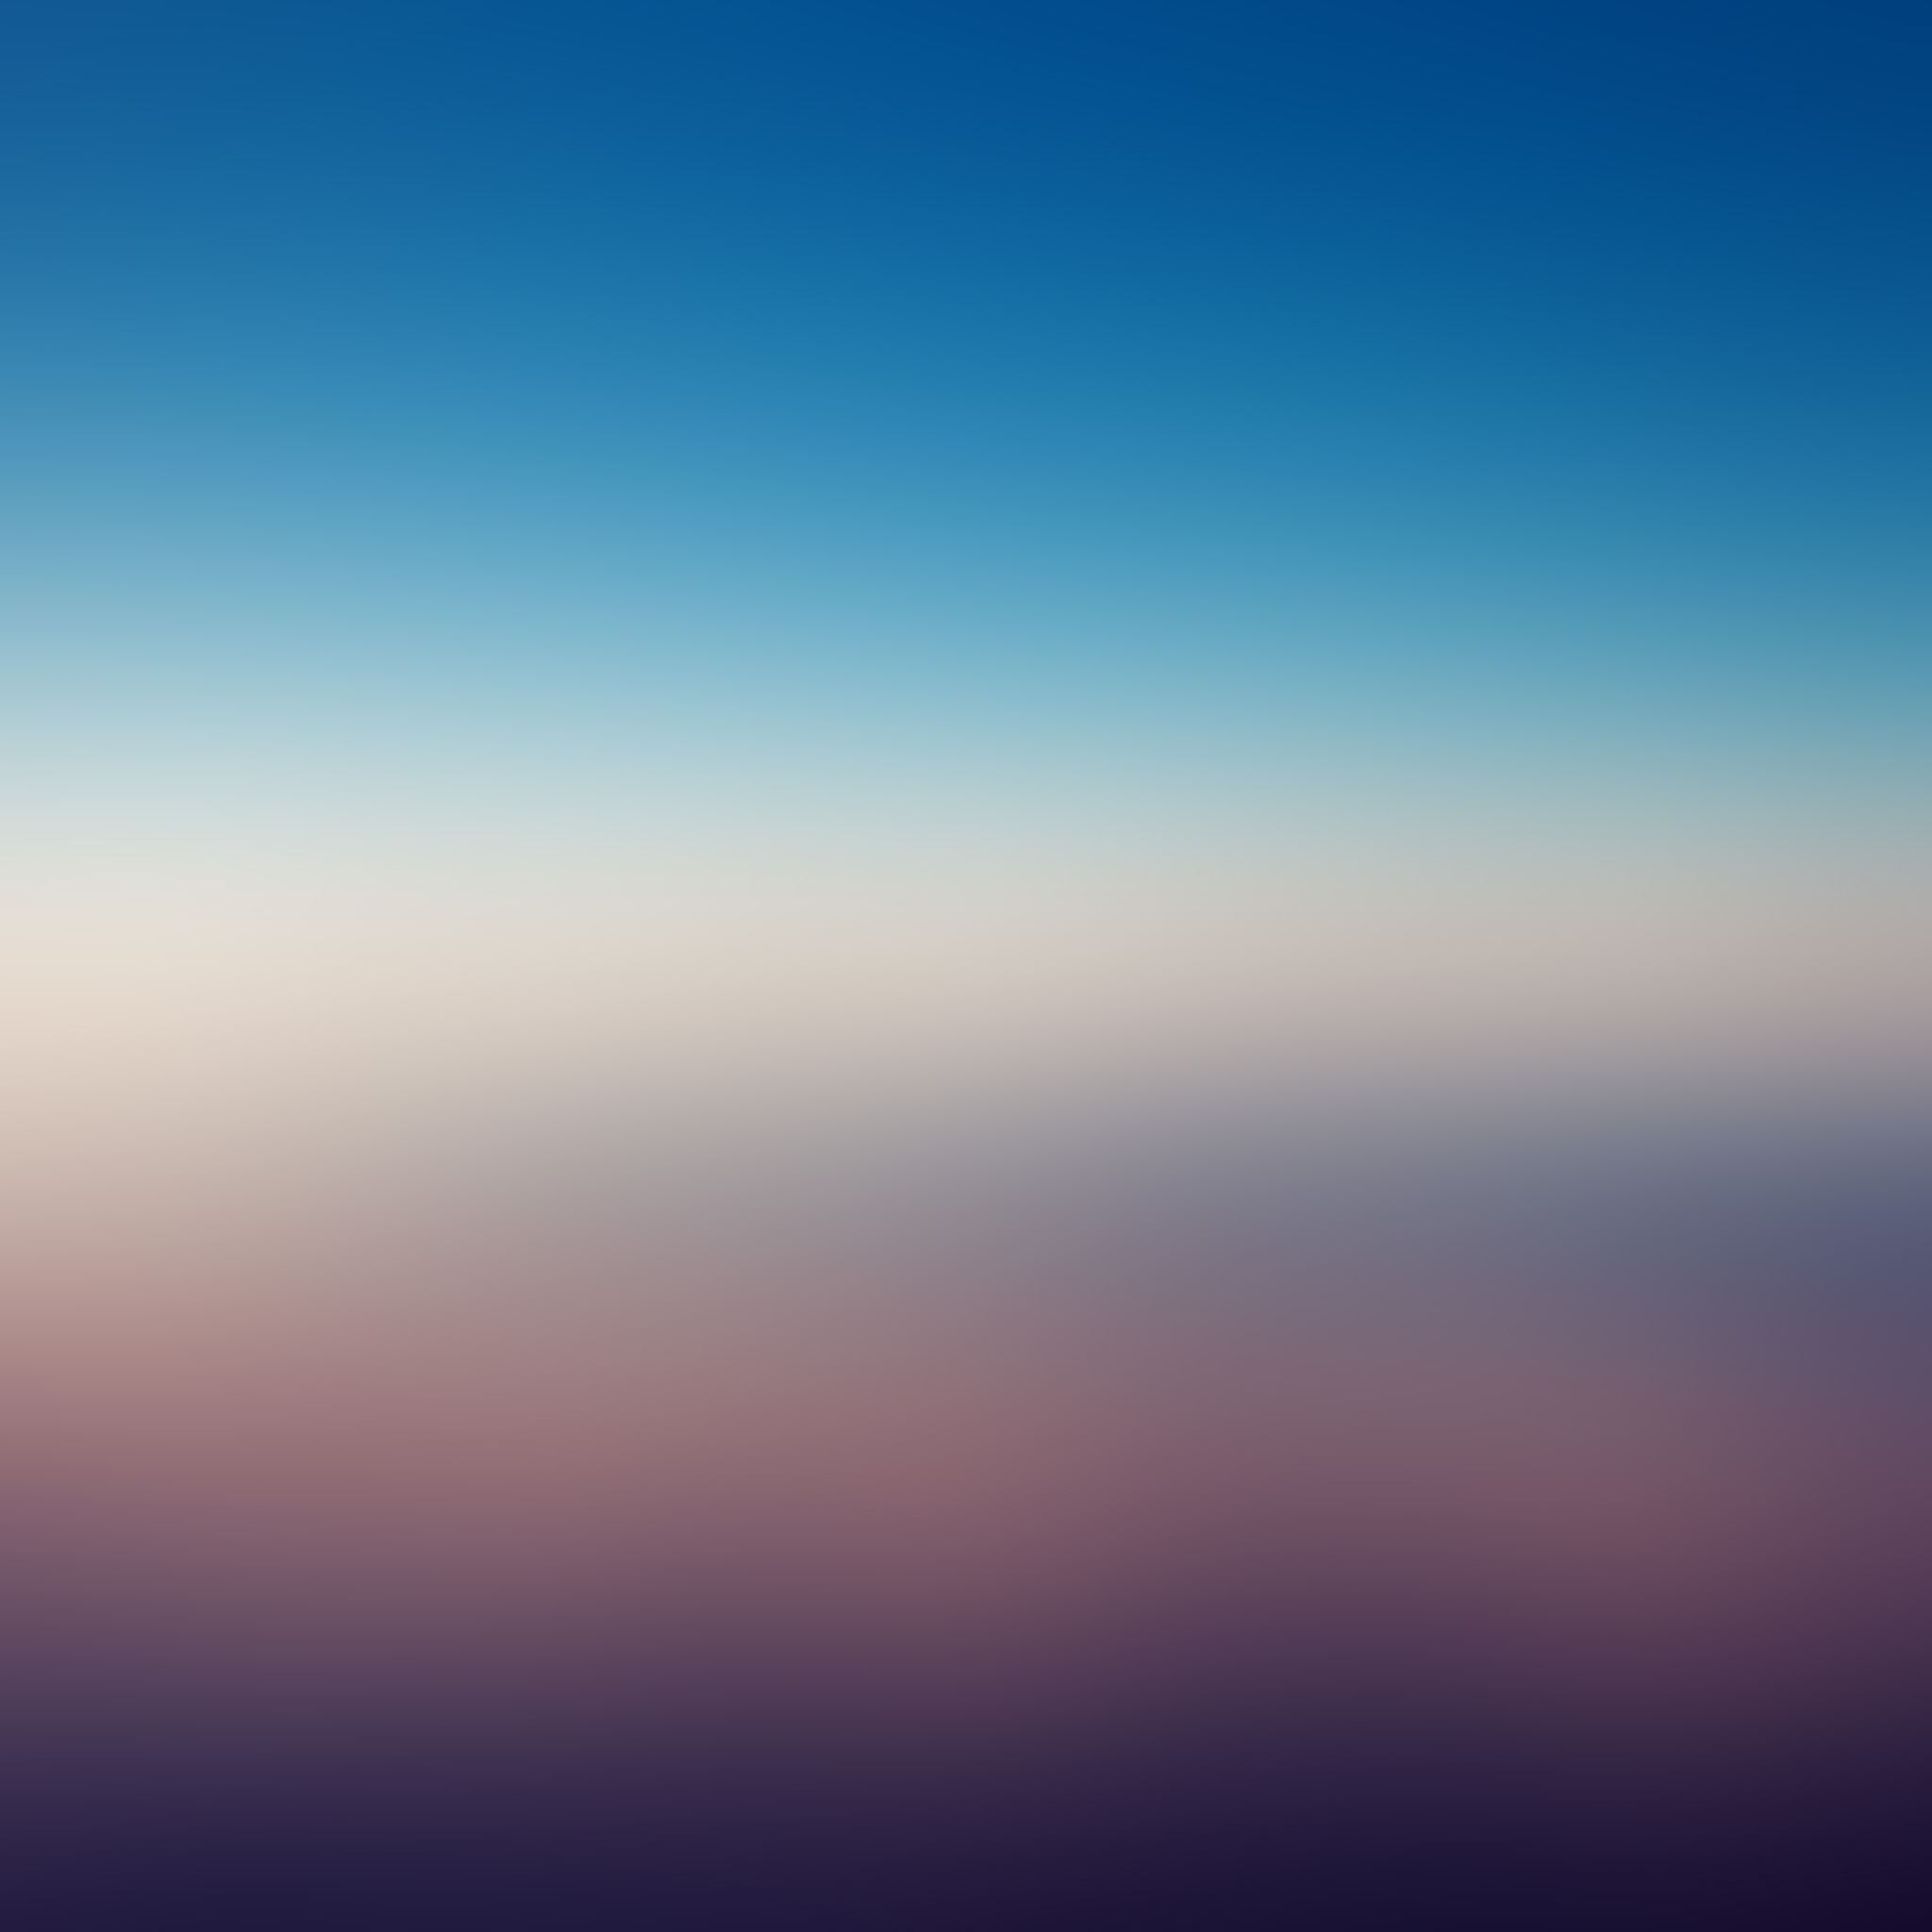 Ocean Art Peace Blue Gradation Blur iPad Air wallpaper